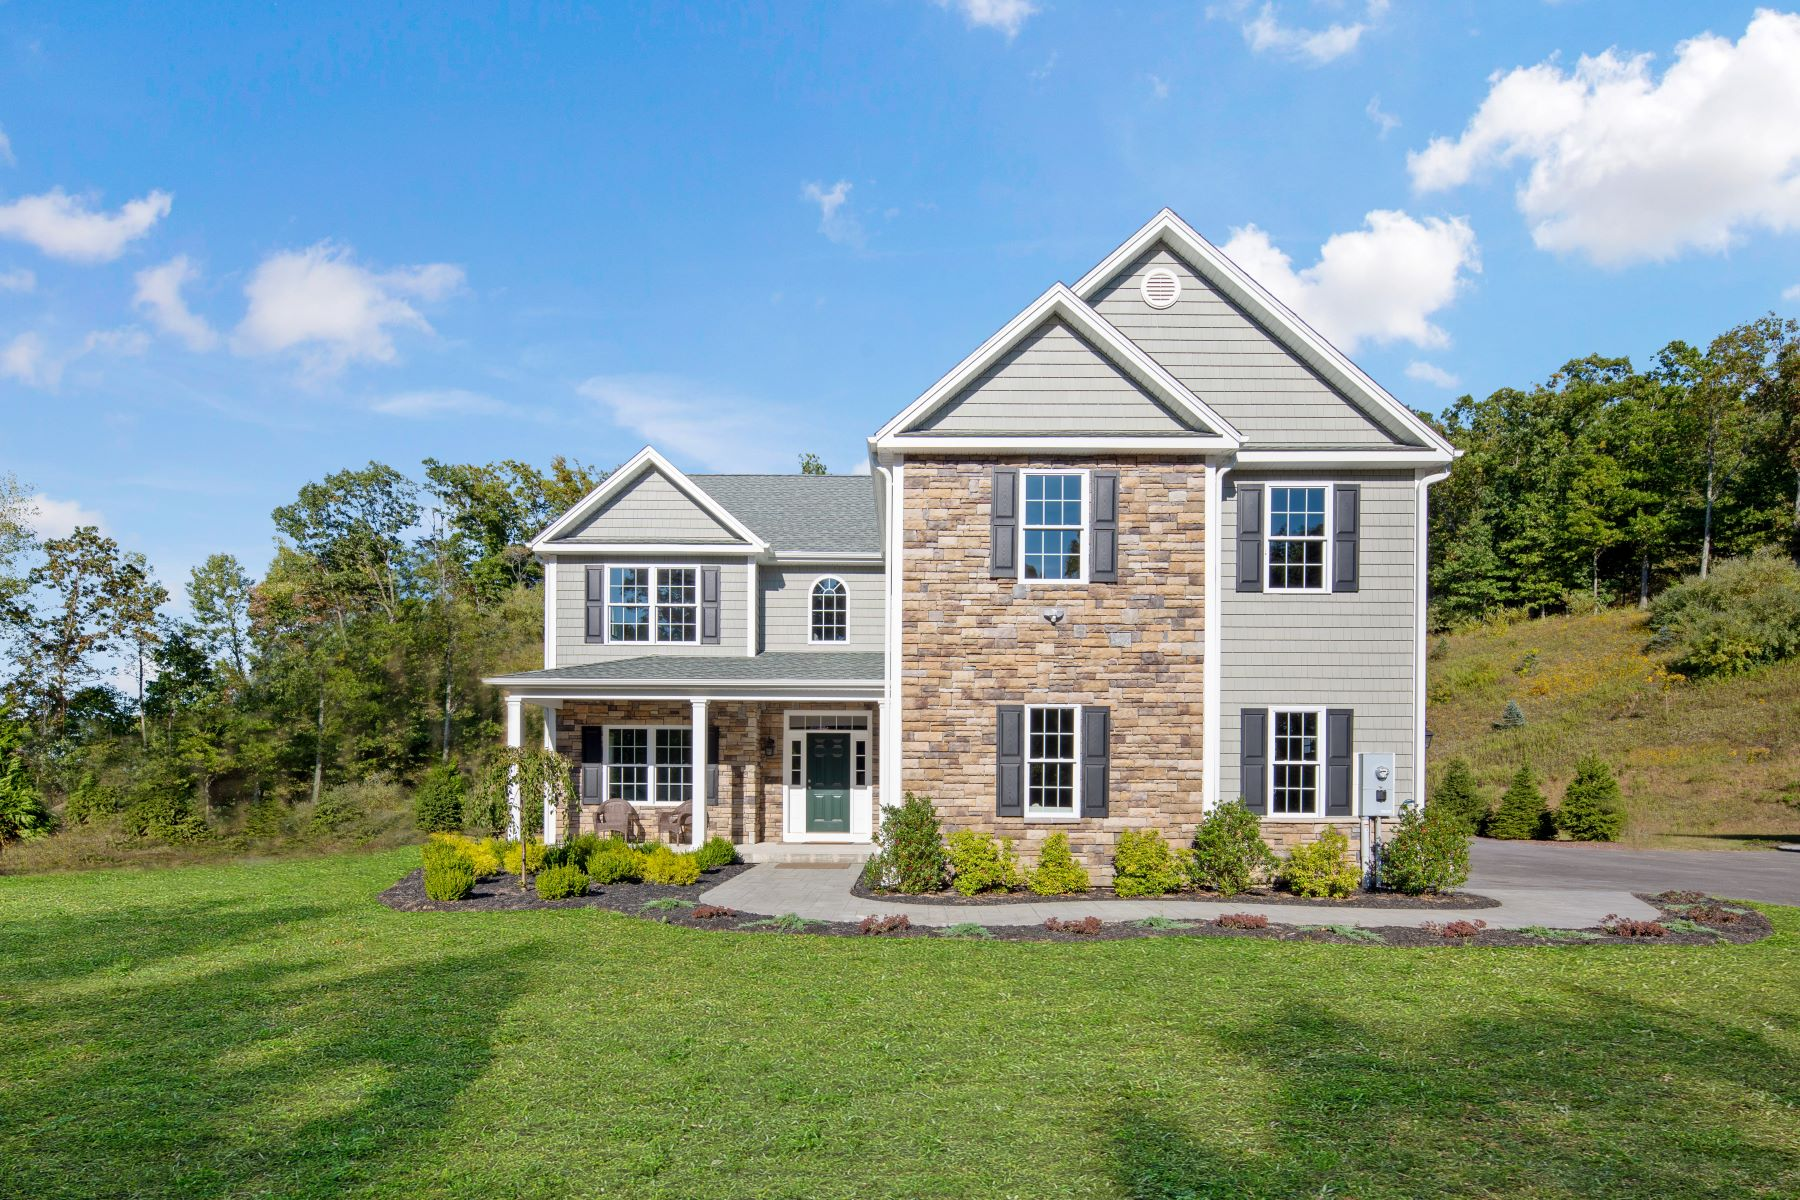 Single Family Homes for Sale at Stunning New Custom Colonial Home 15 Shelter Rock Rd Bethel, Connecticut 06801 United States